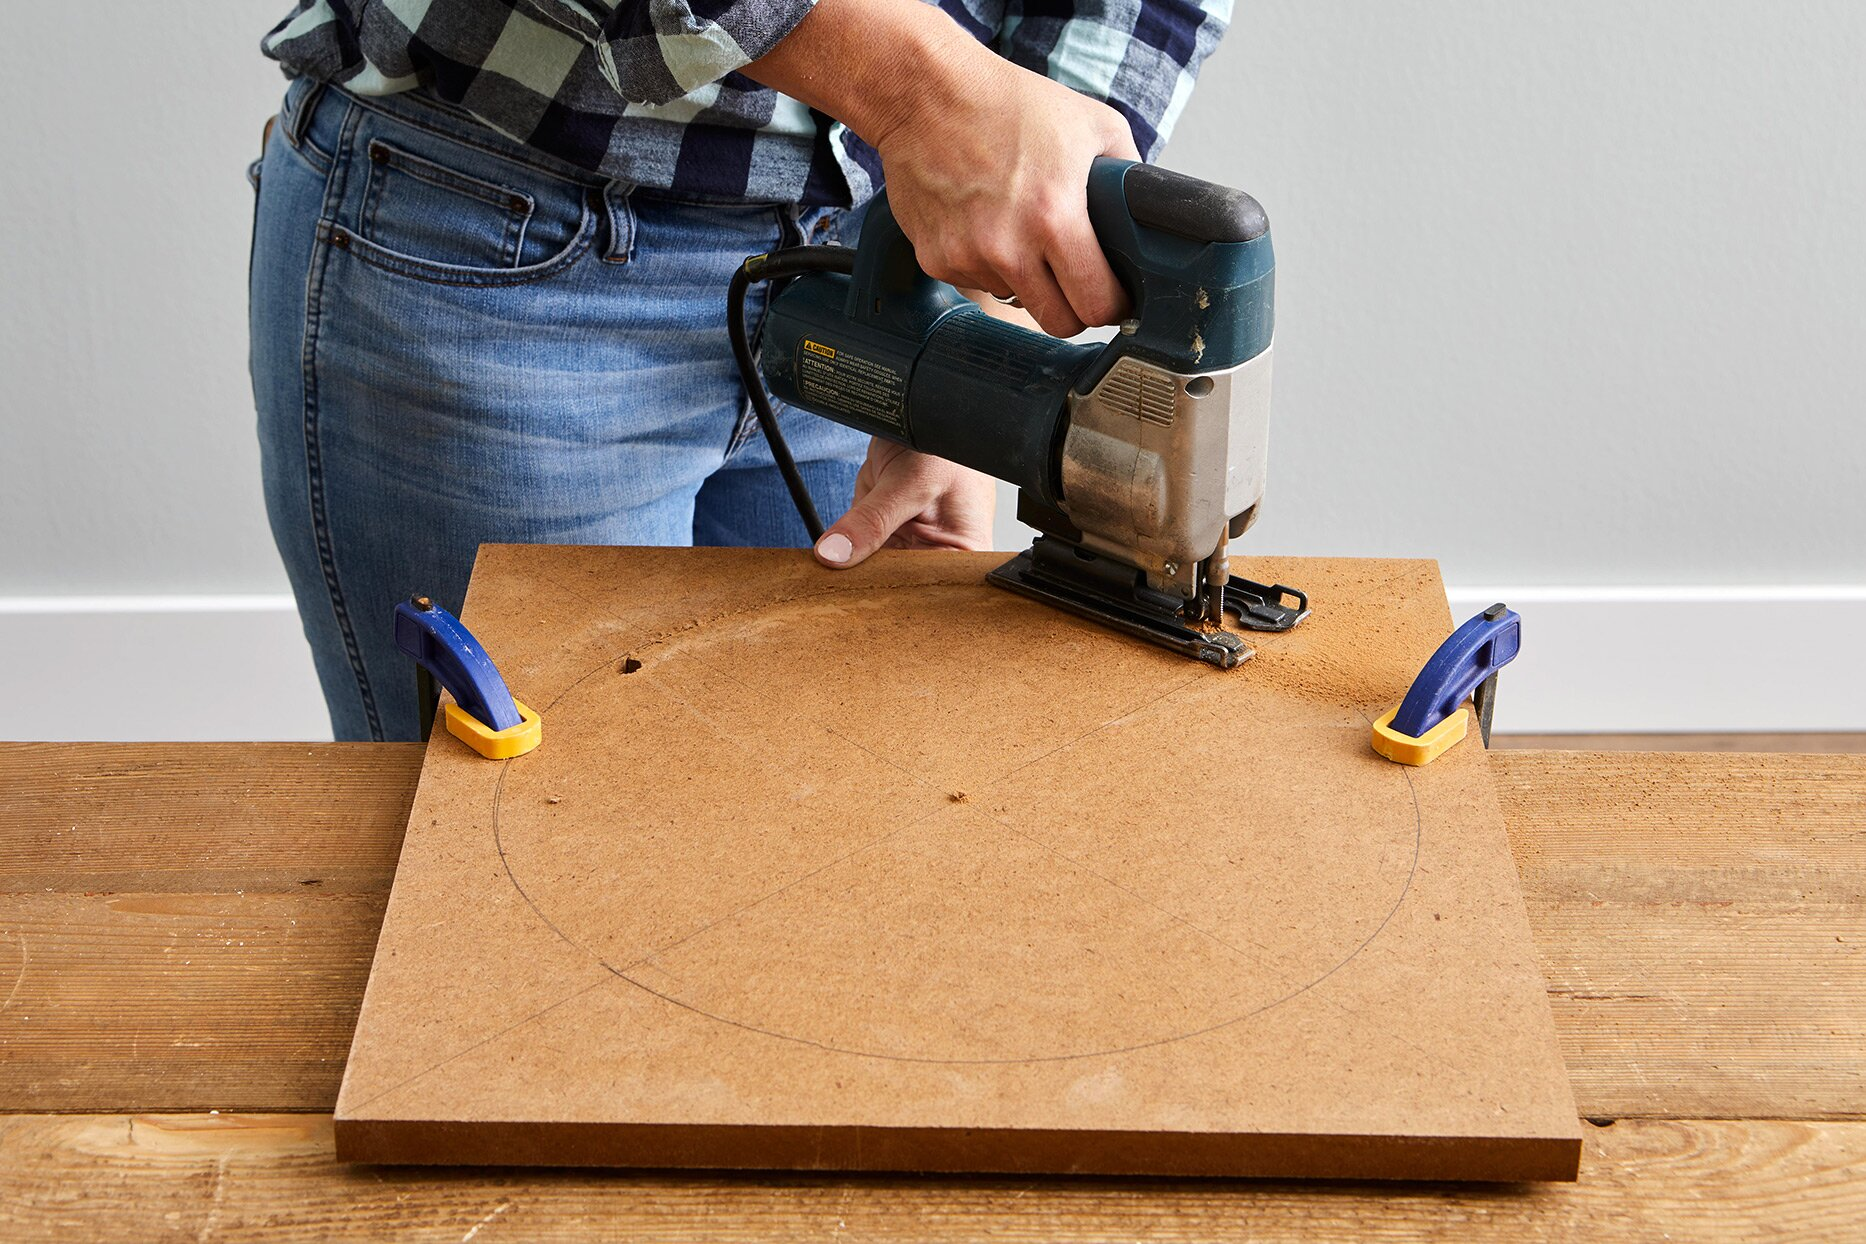 carving circle with jigsaw